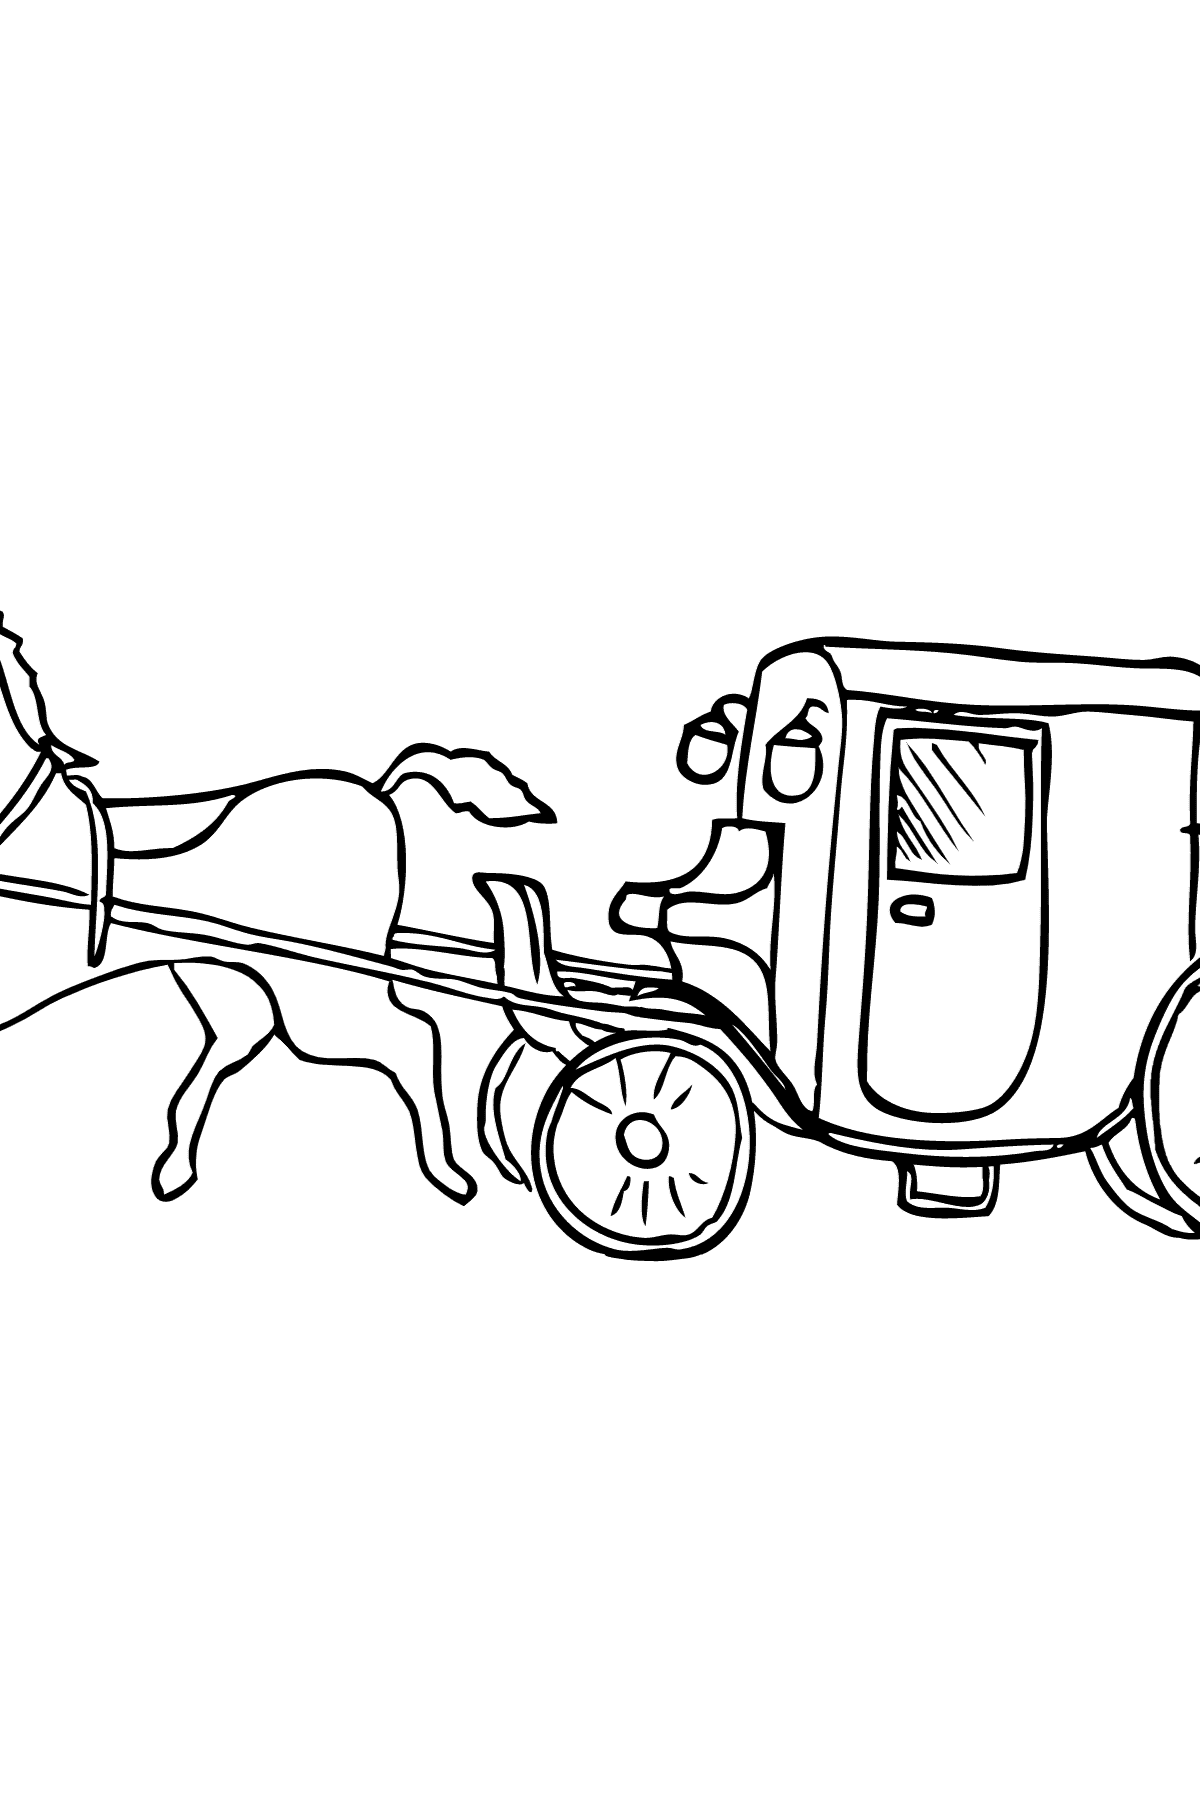 Coloring Page - A Cab - Coloring Pages for Kids